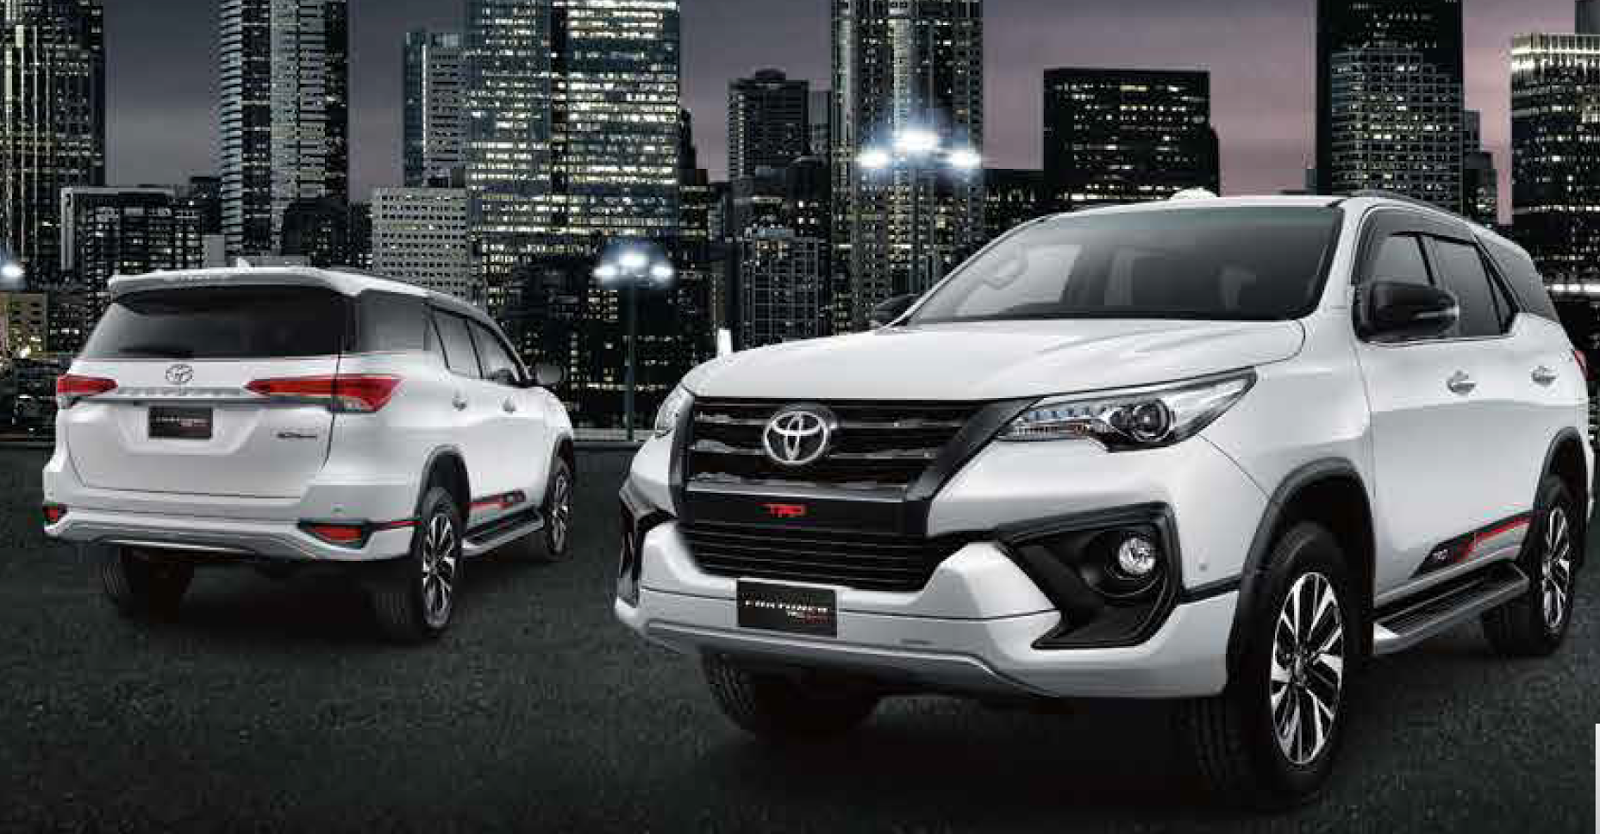 new agya trd 2018 grand avanza review indonesia fortuner 2017 spesifikasi harga toyota auto 2000